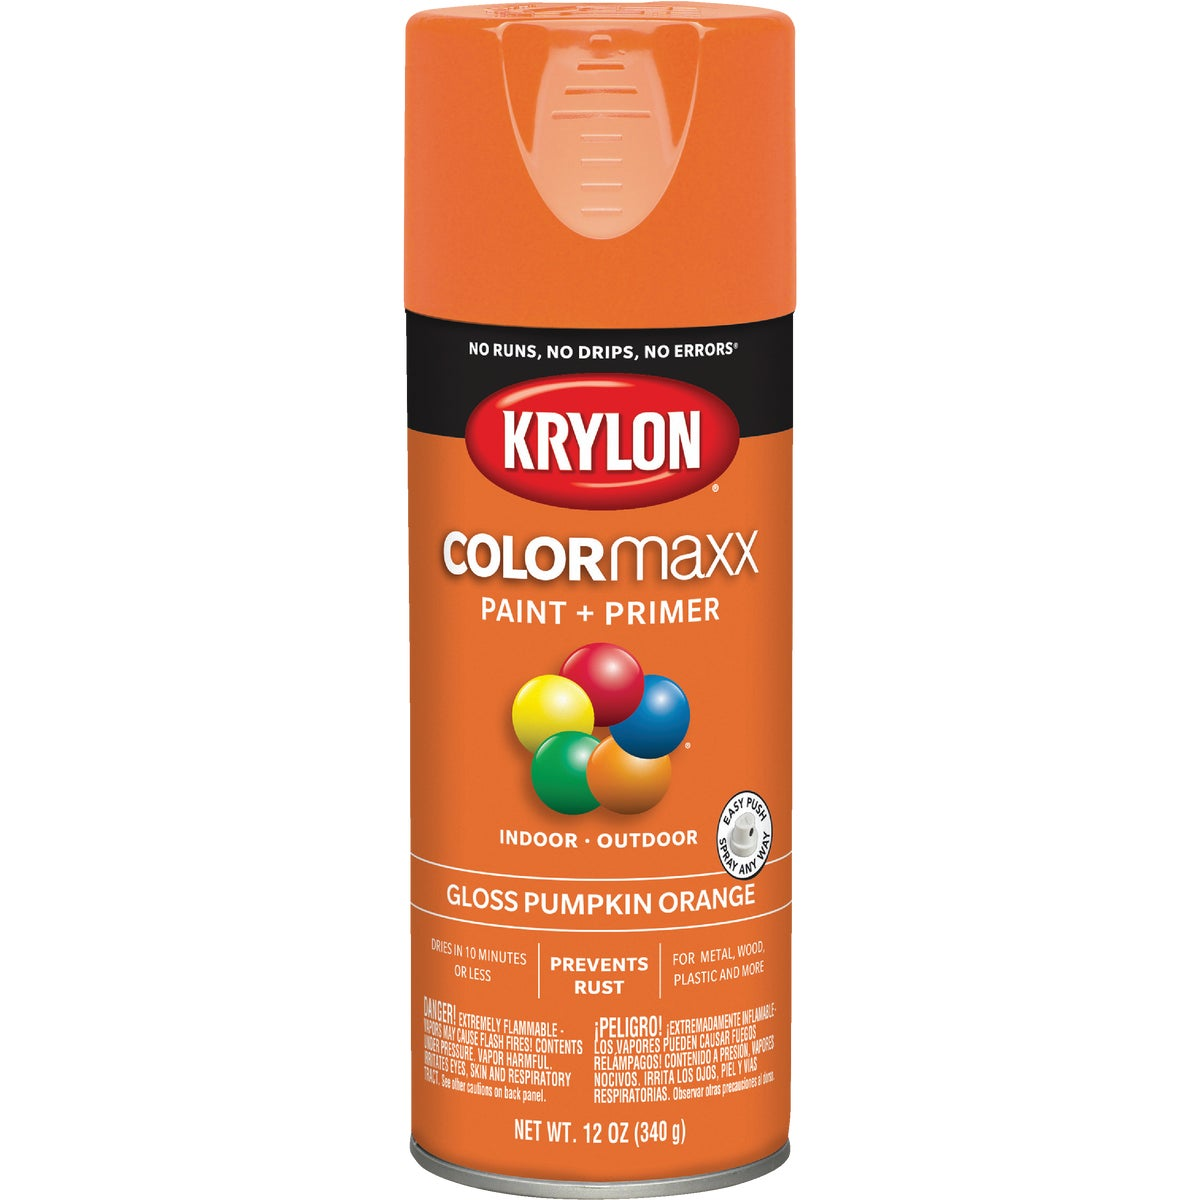 GLS PUMPKIN SPRAY PAINT - 52411 by Krylon/consumer Div